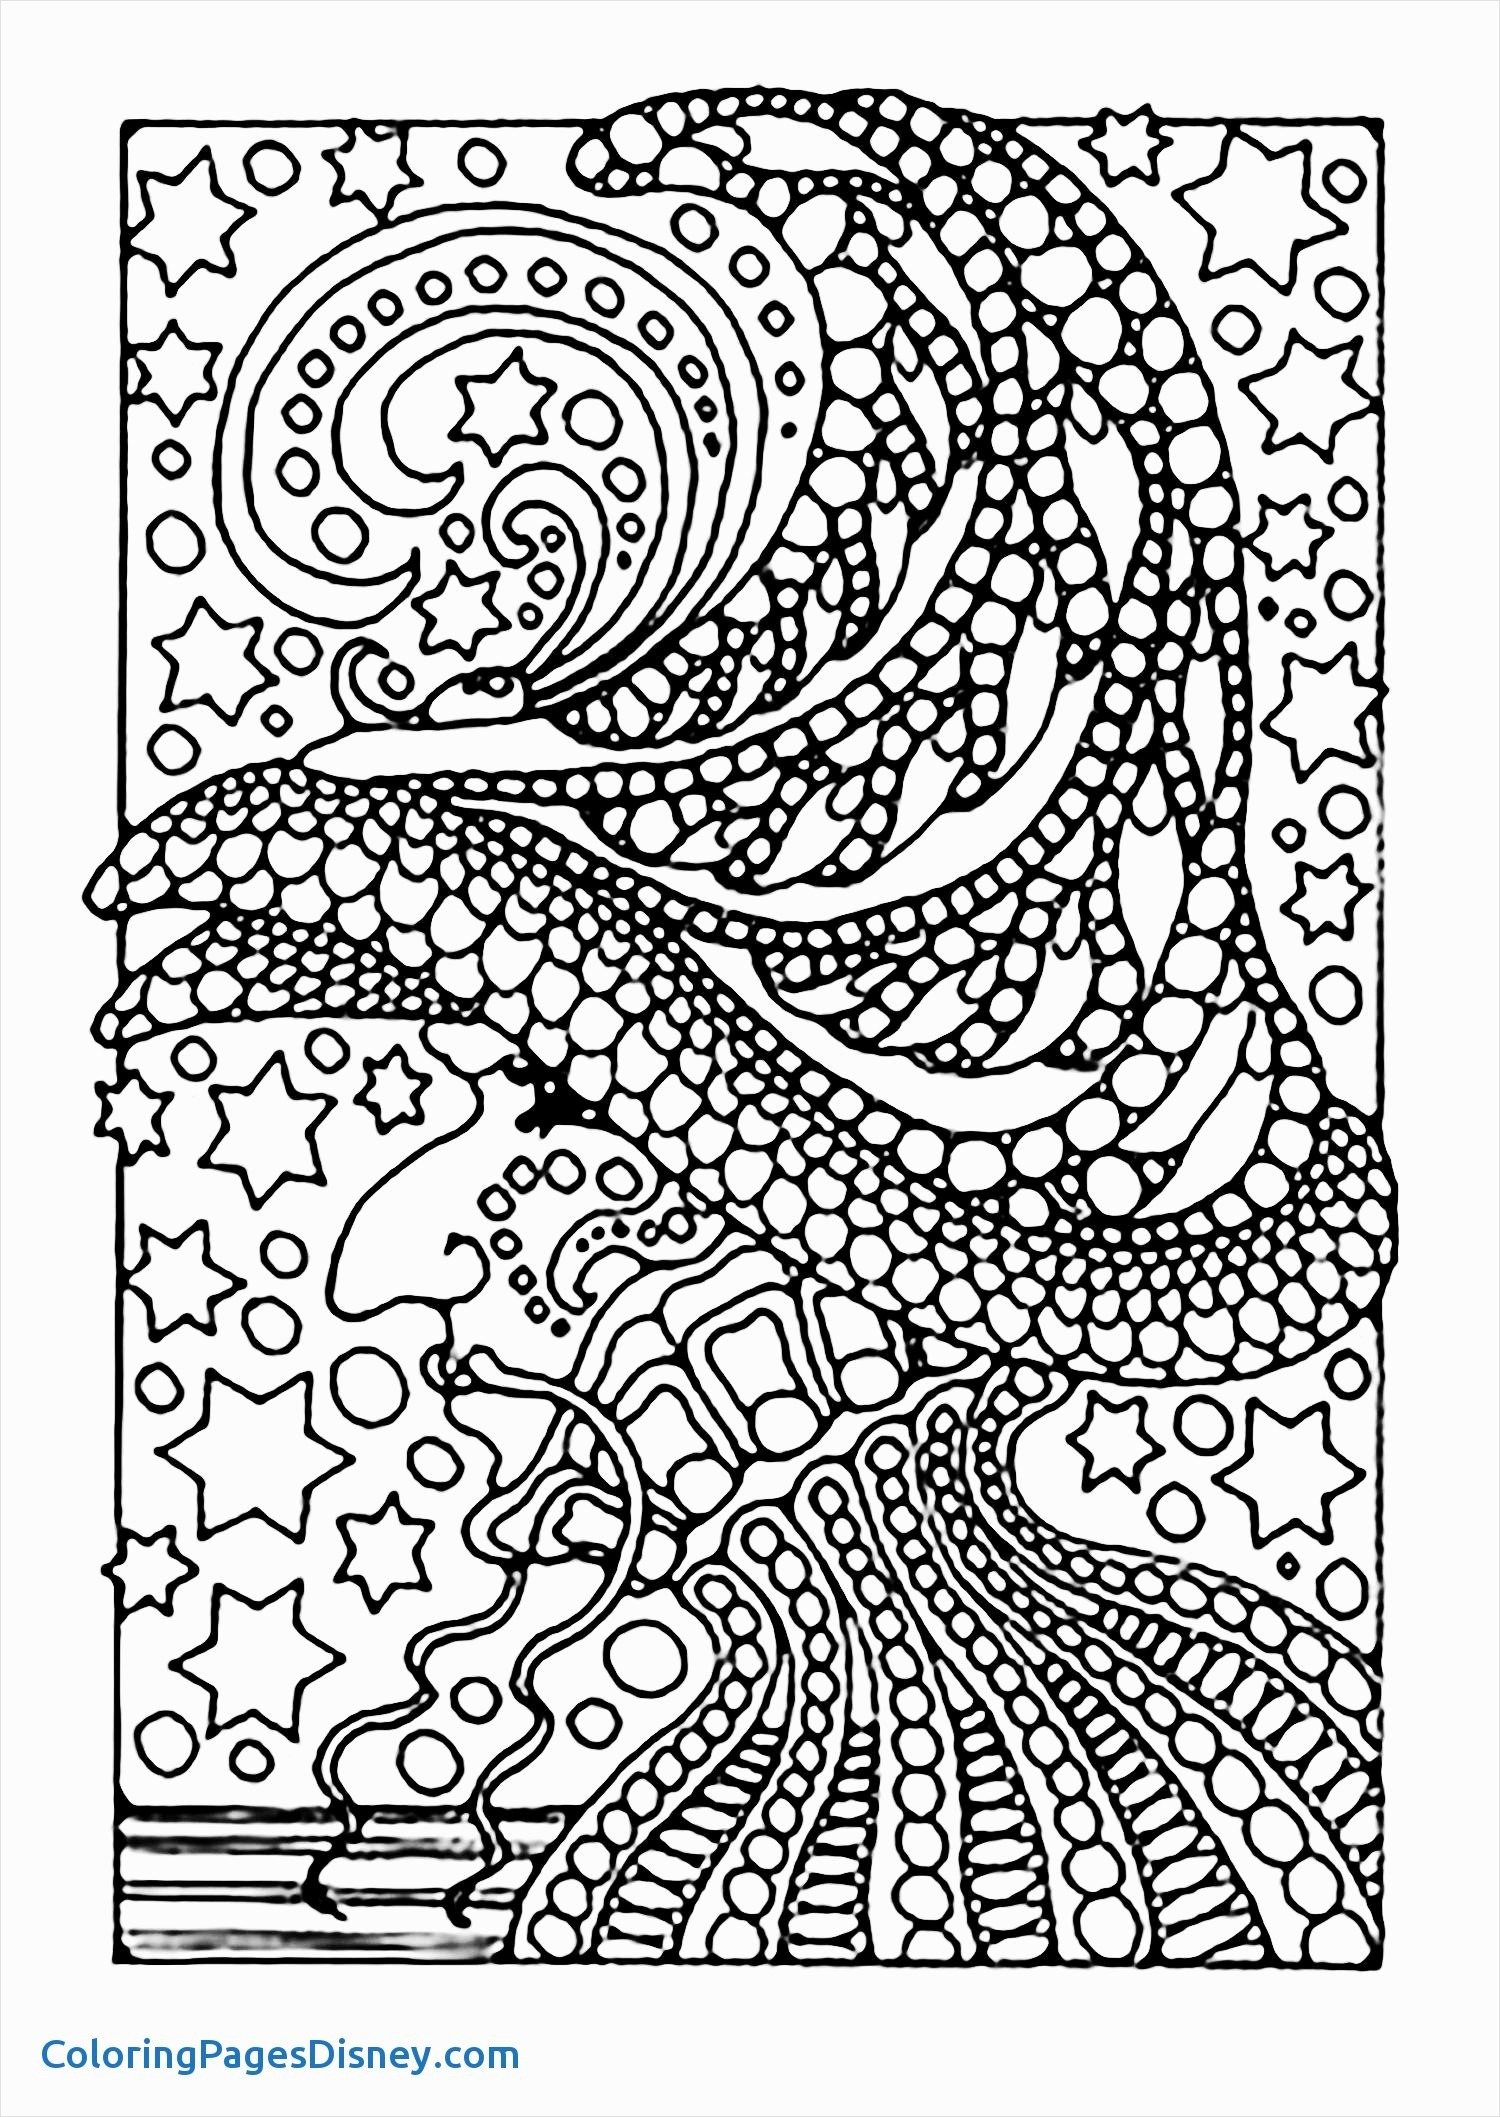 Camping Coloring Pages To Print